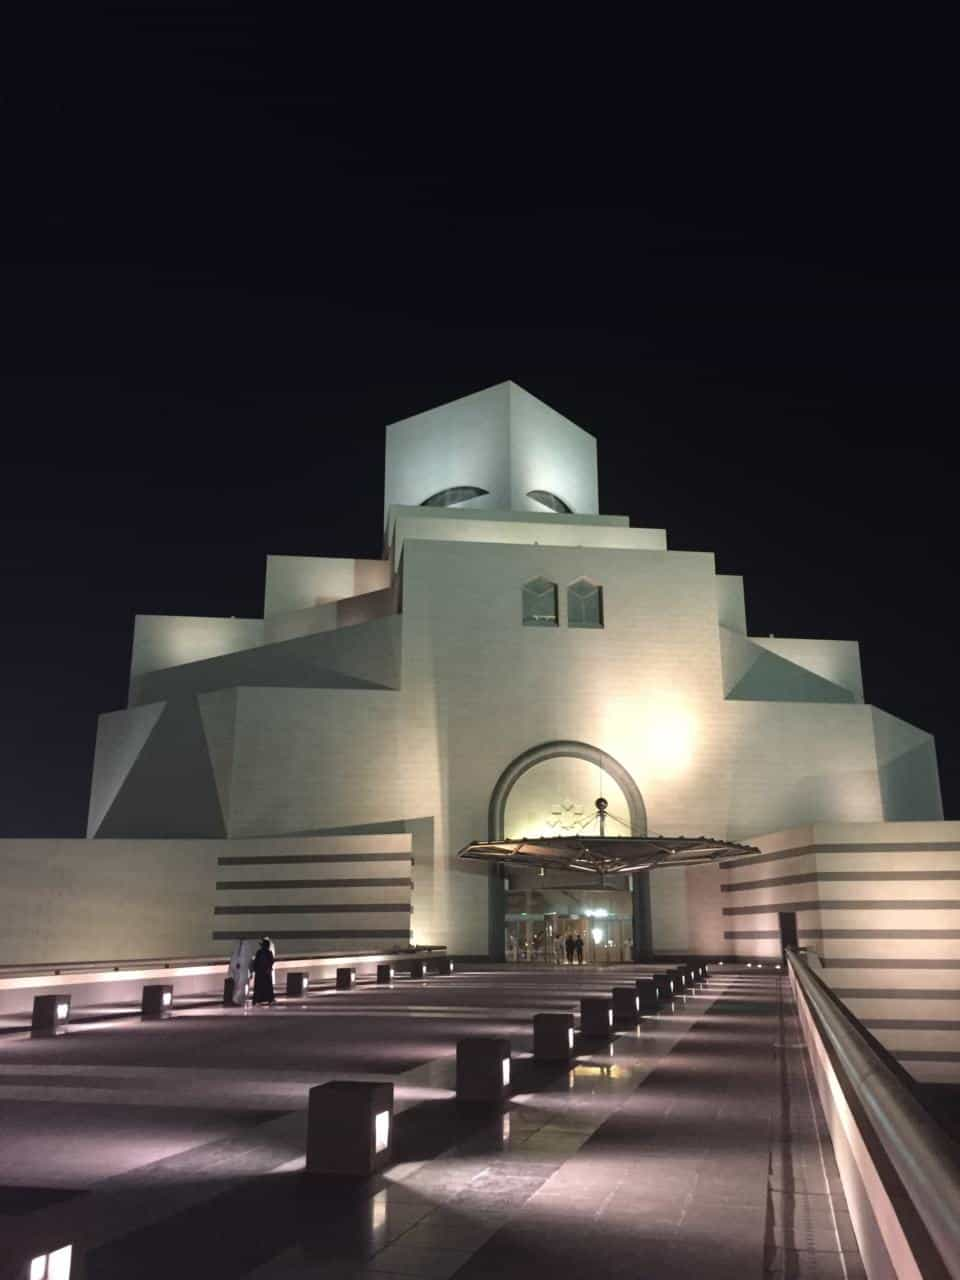 The Museum of Islamic Art Doha Qatar - one of the best things to do in Doha at night and The Best Doha Tours and Day trips in Doha